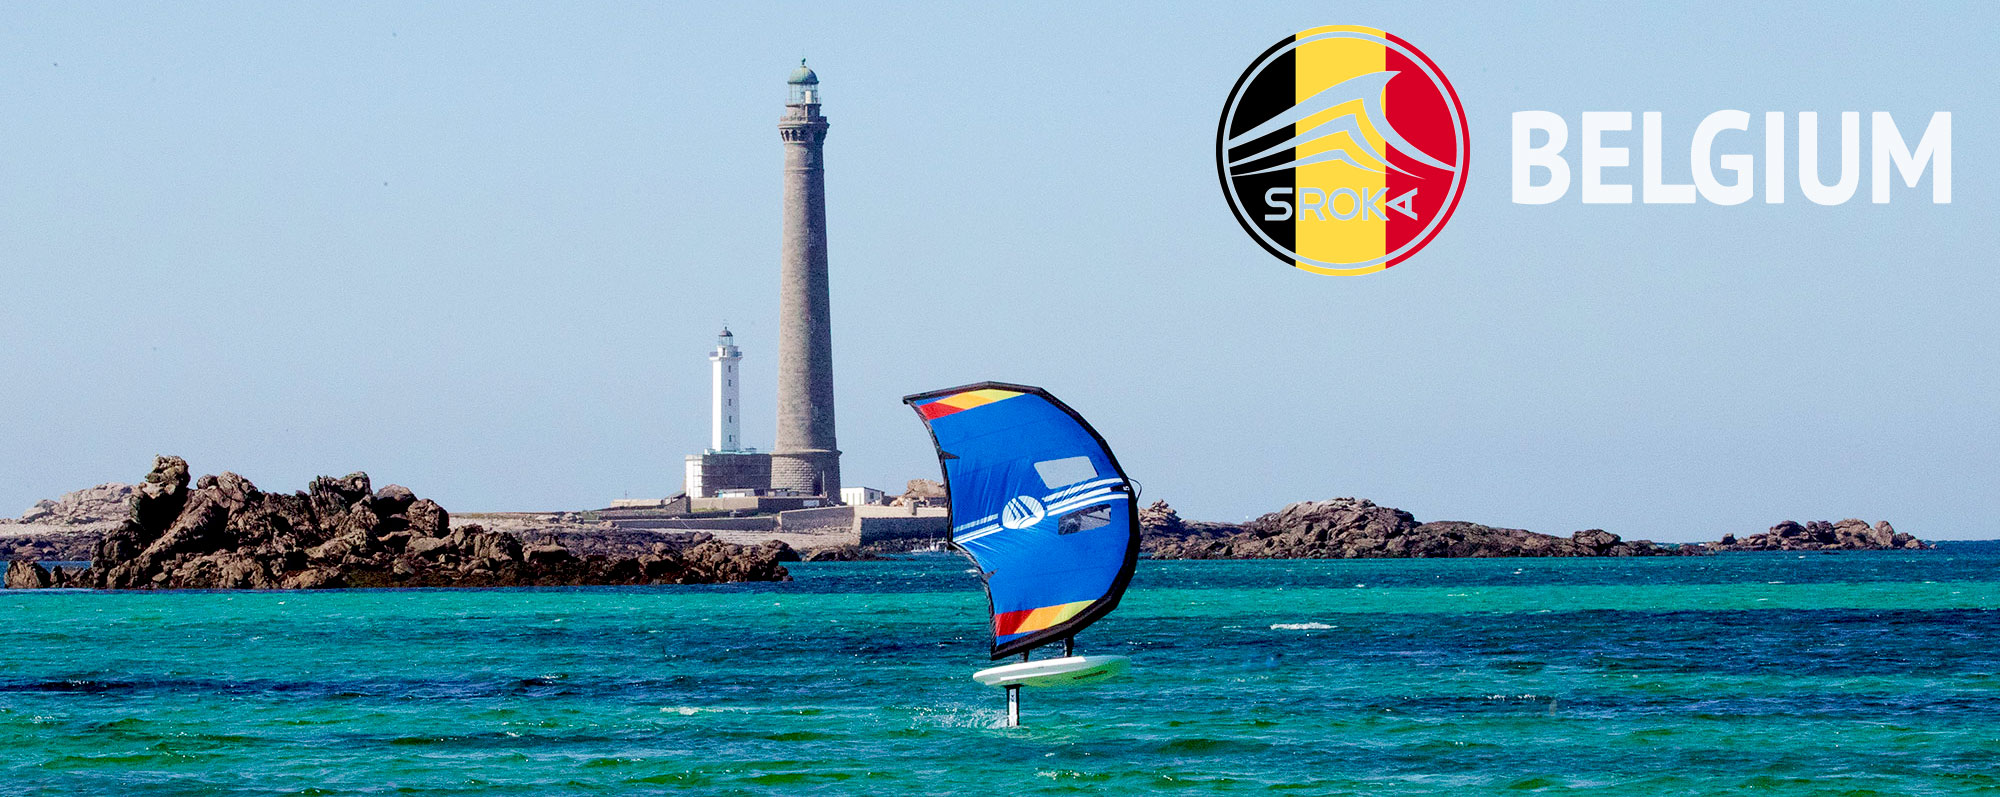 Buy a wing foil in Belgium, surf foil, SUP foil, kite foil, wind foil or a stand-up paddle.